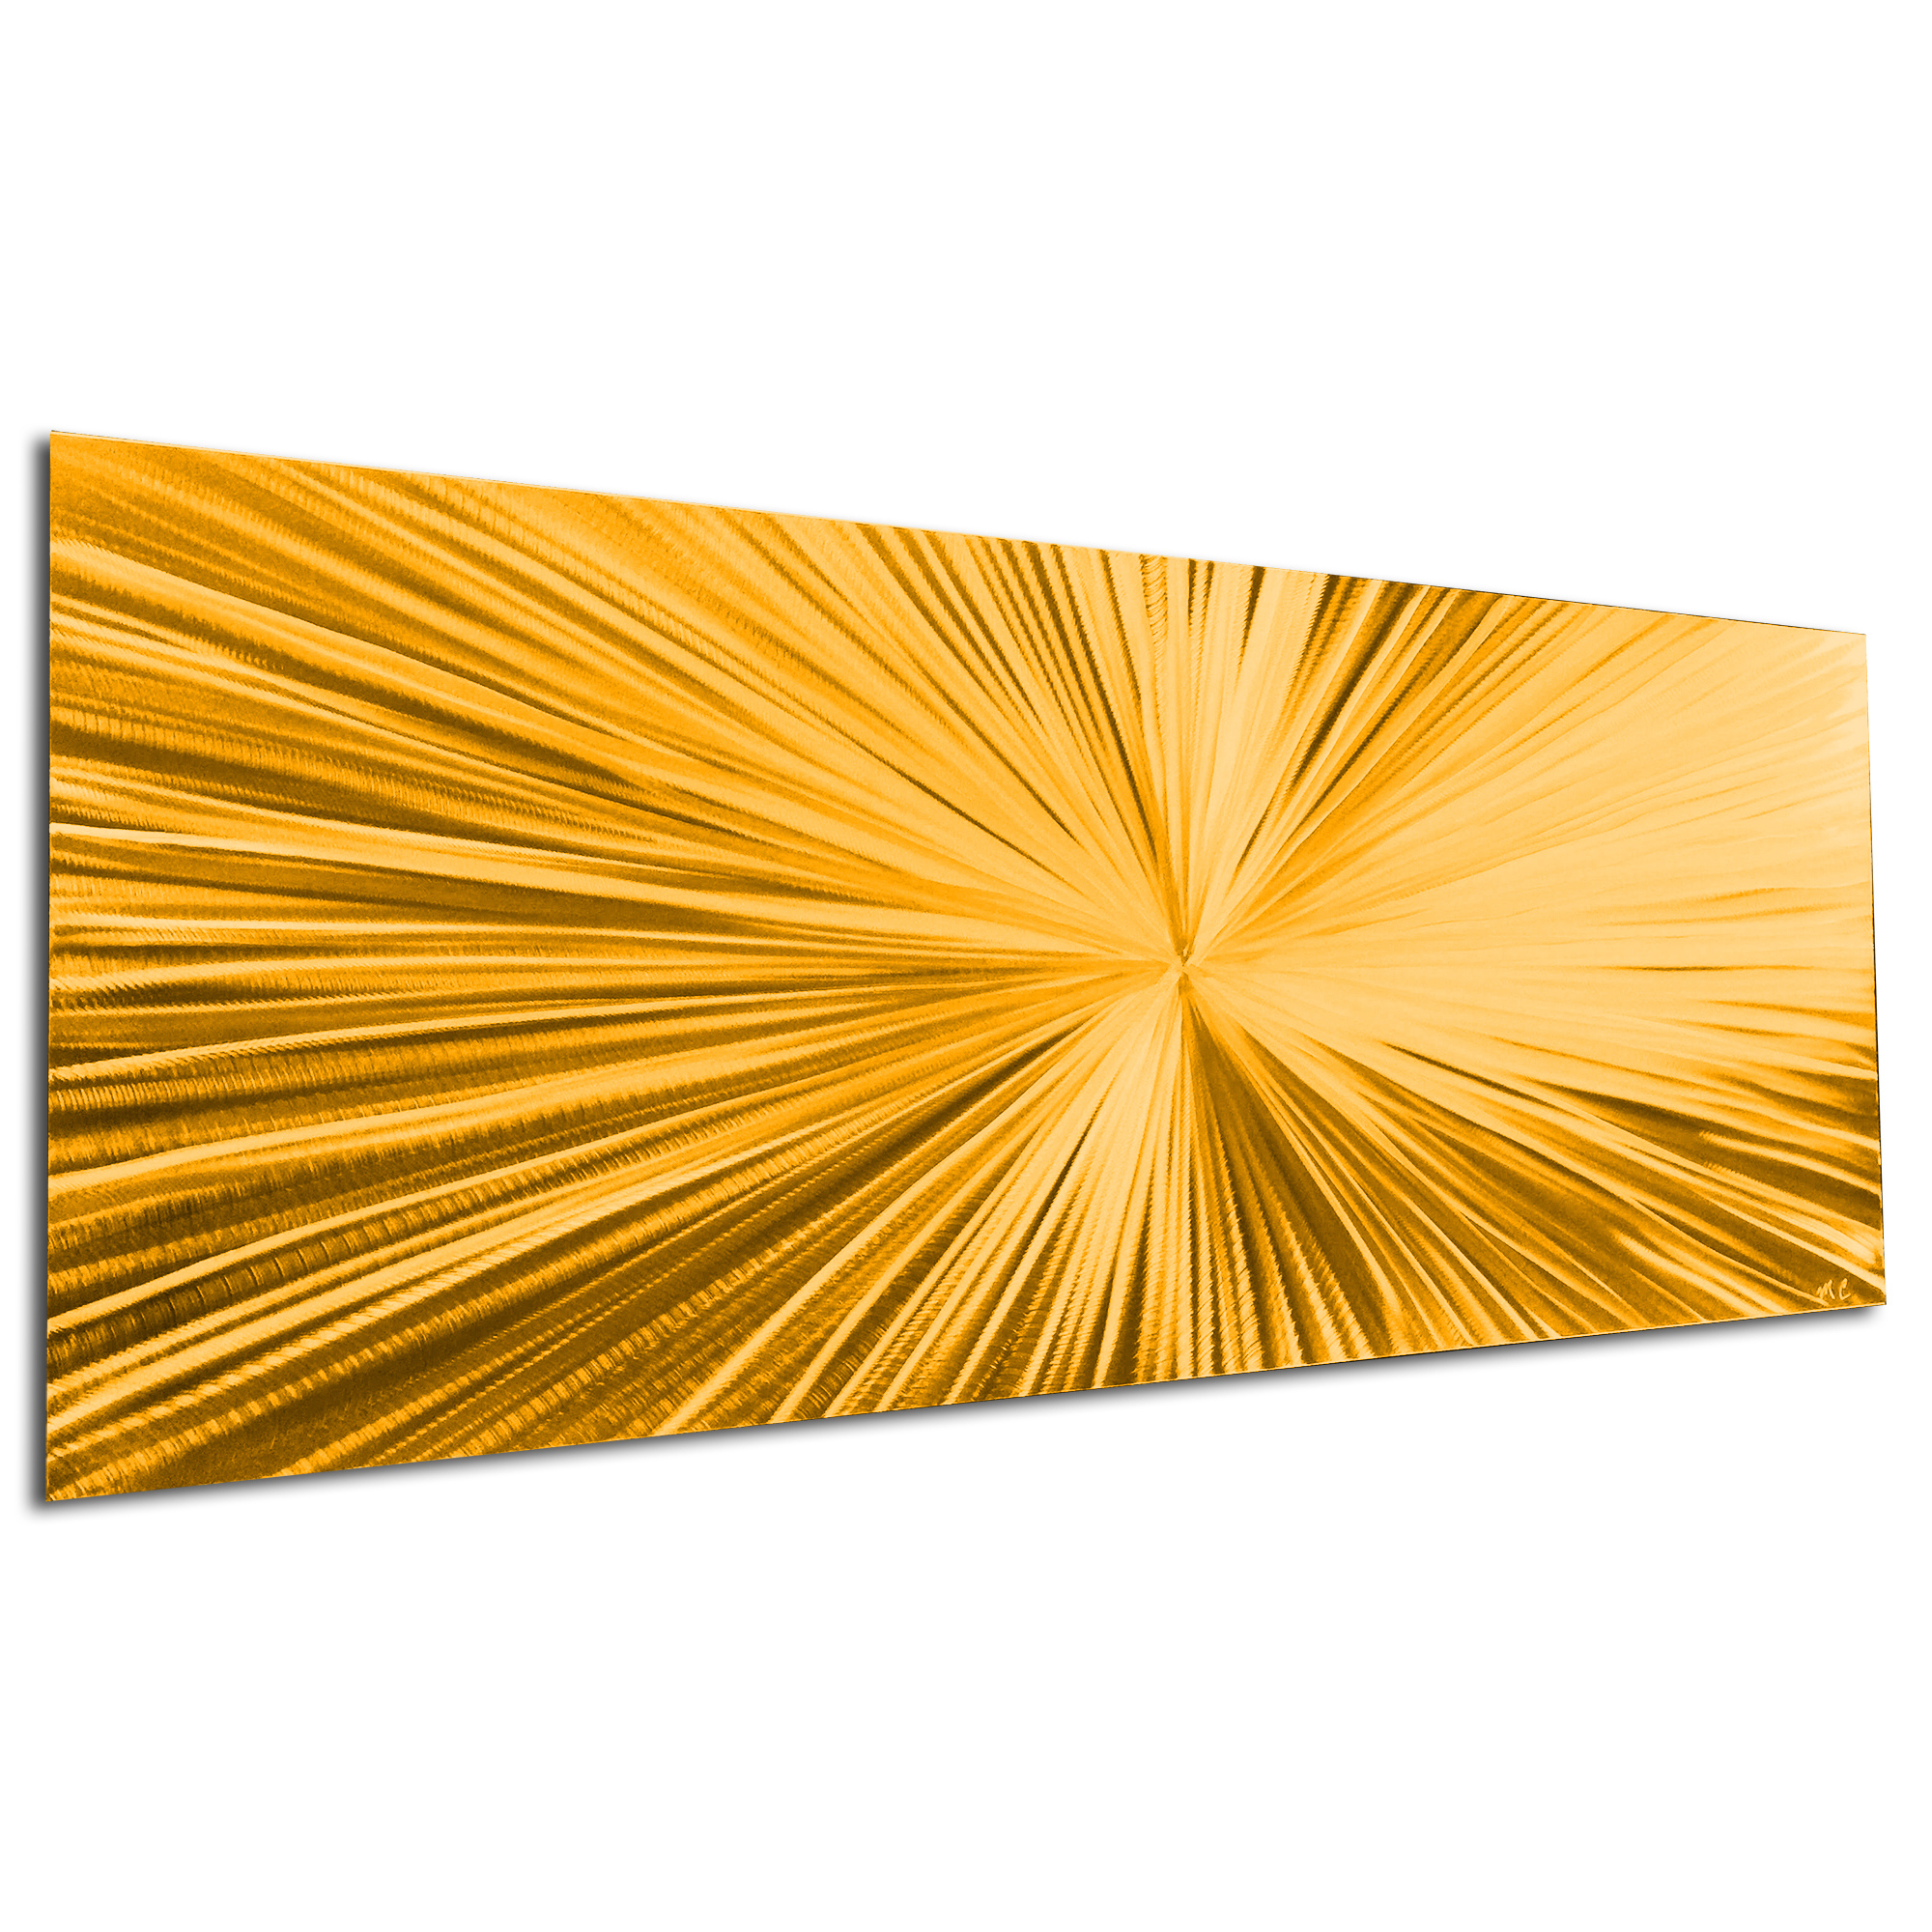 Starburst Gold by Helena Martin - Original Abstract Art on Ground and Painted Metal - Image 3